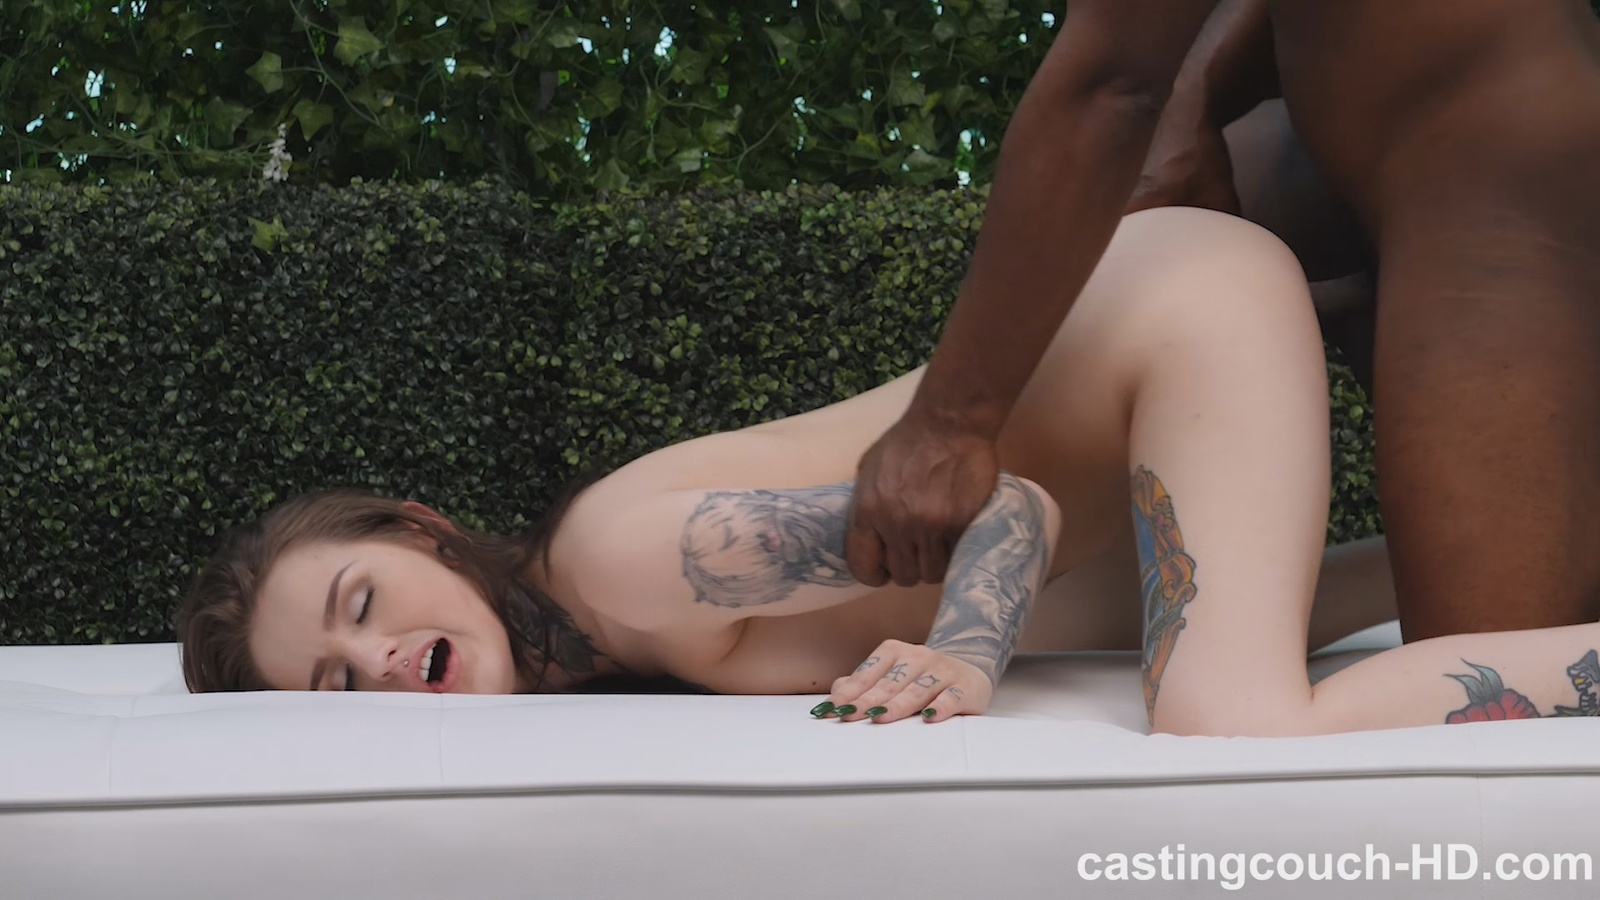 Casting couch hd jenna